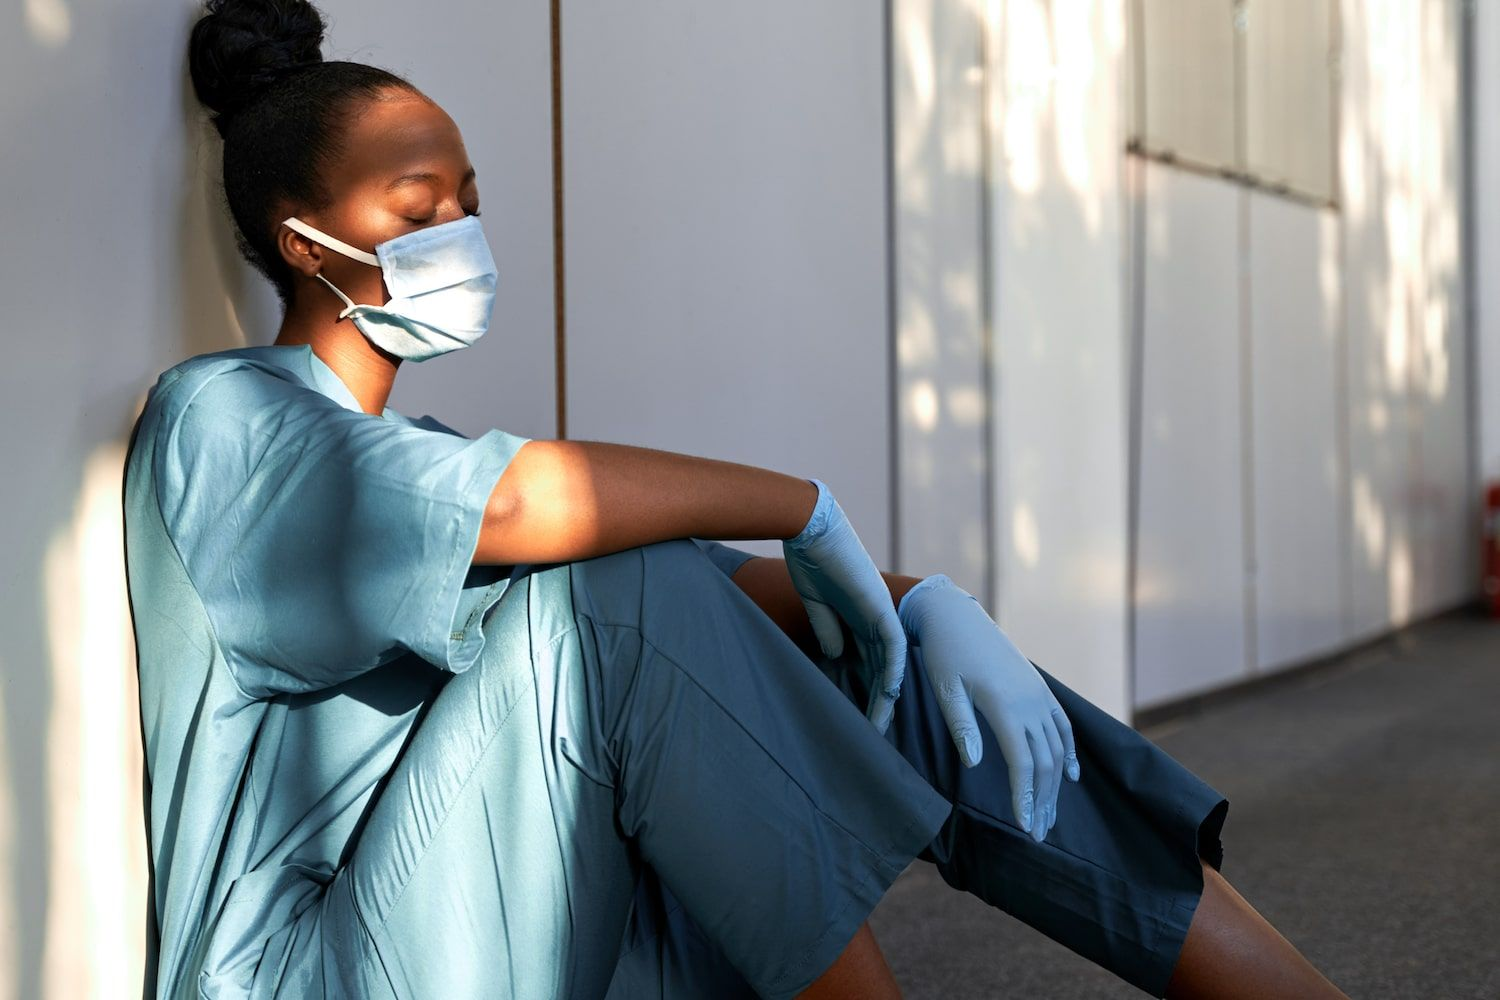 NHS staff: Rise in mental health issues and many plan to quit